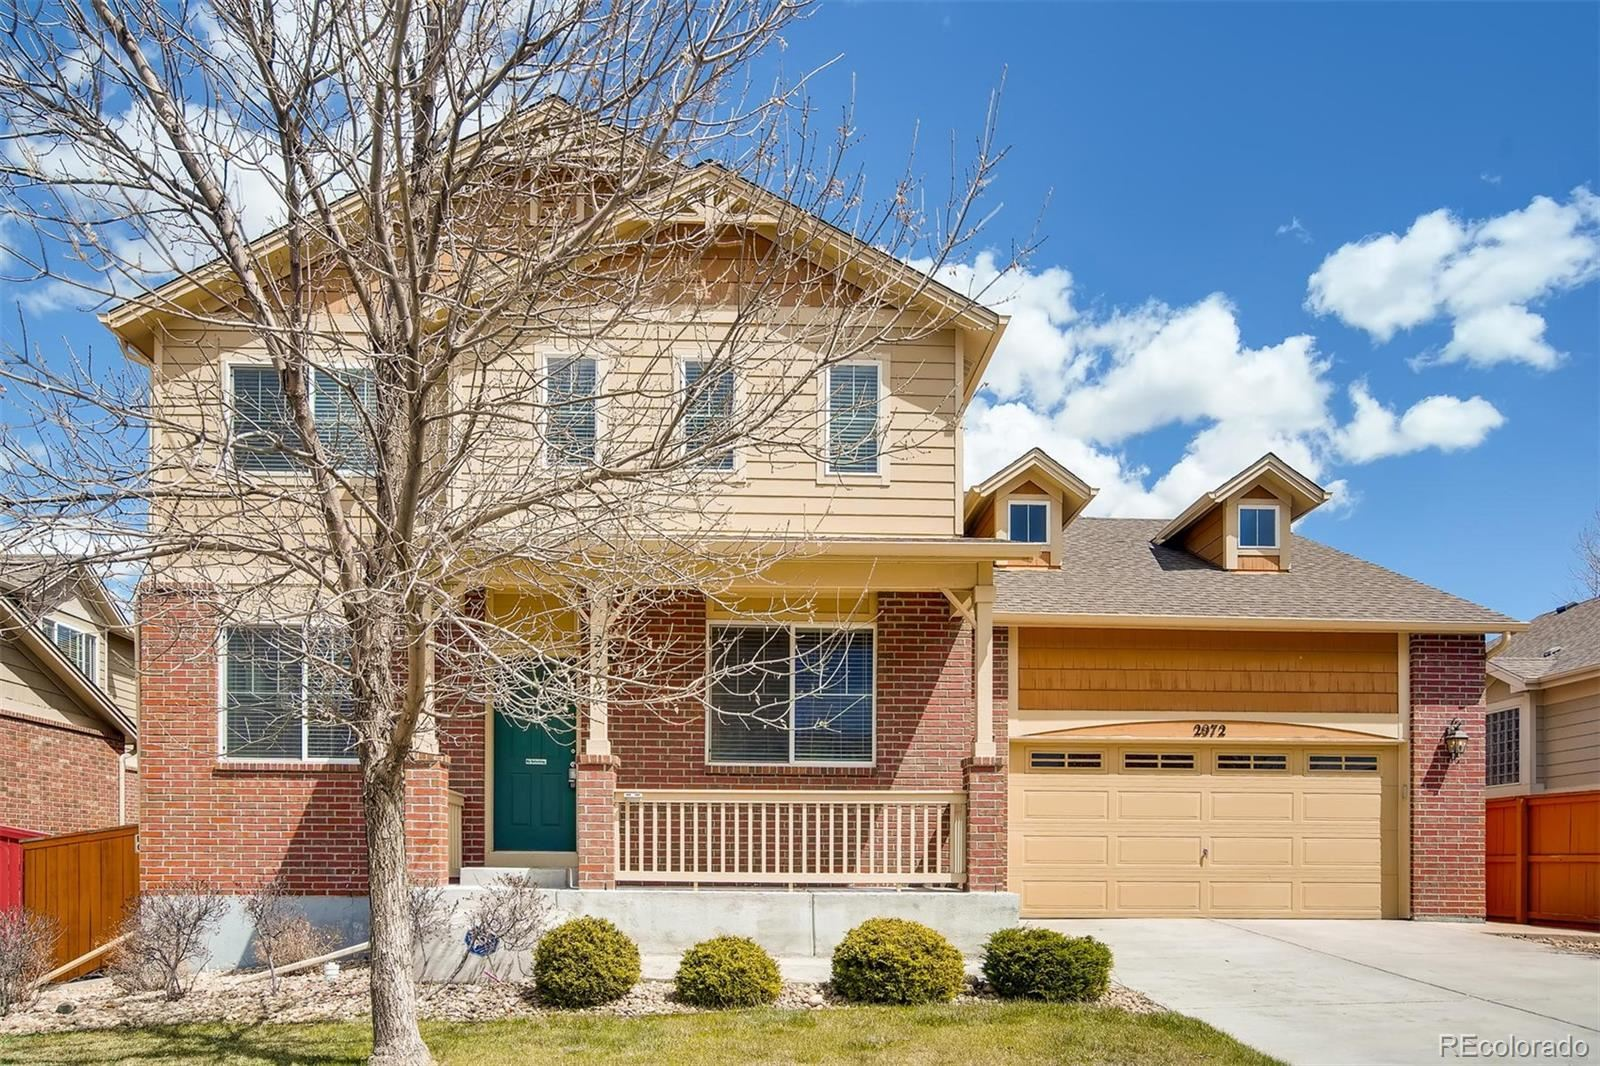 2972 S Jericho Way, Aurora, CO 80013 - #: 5507959